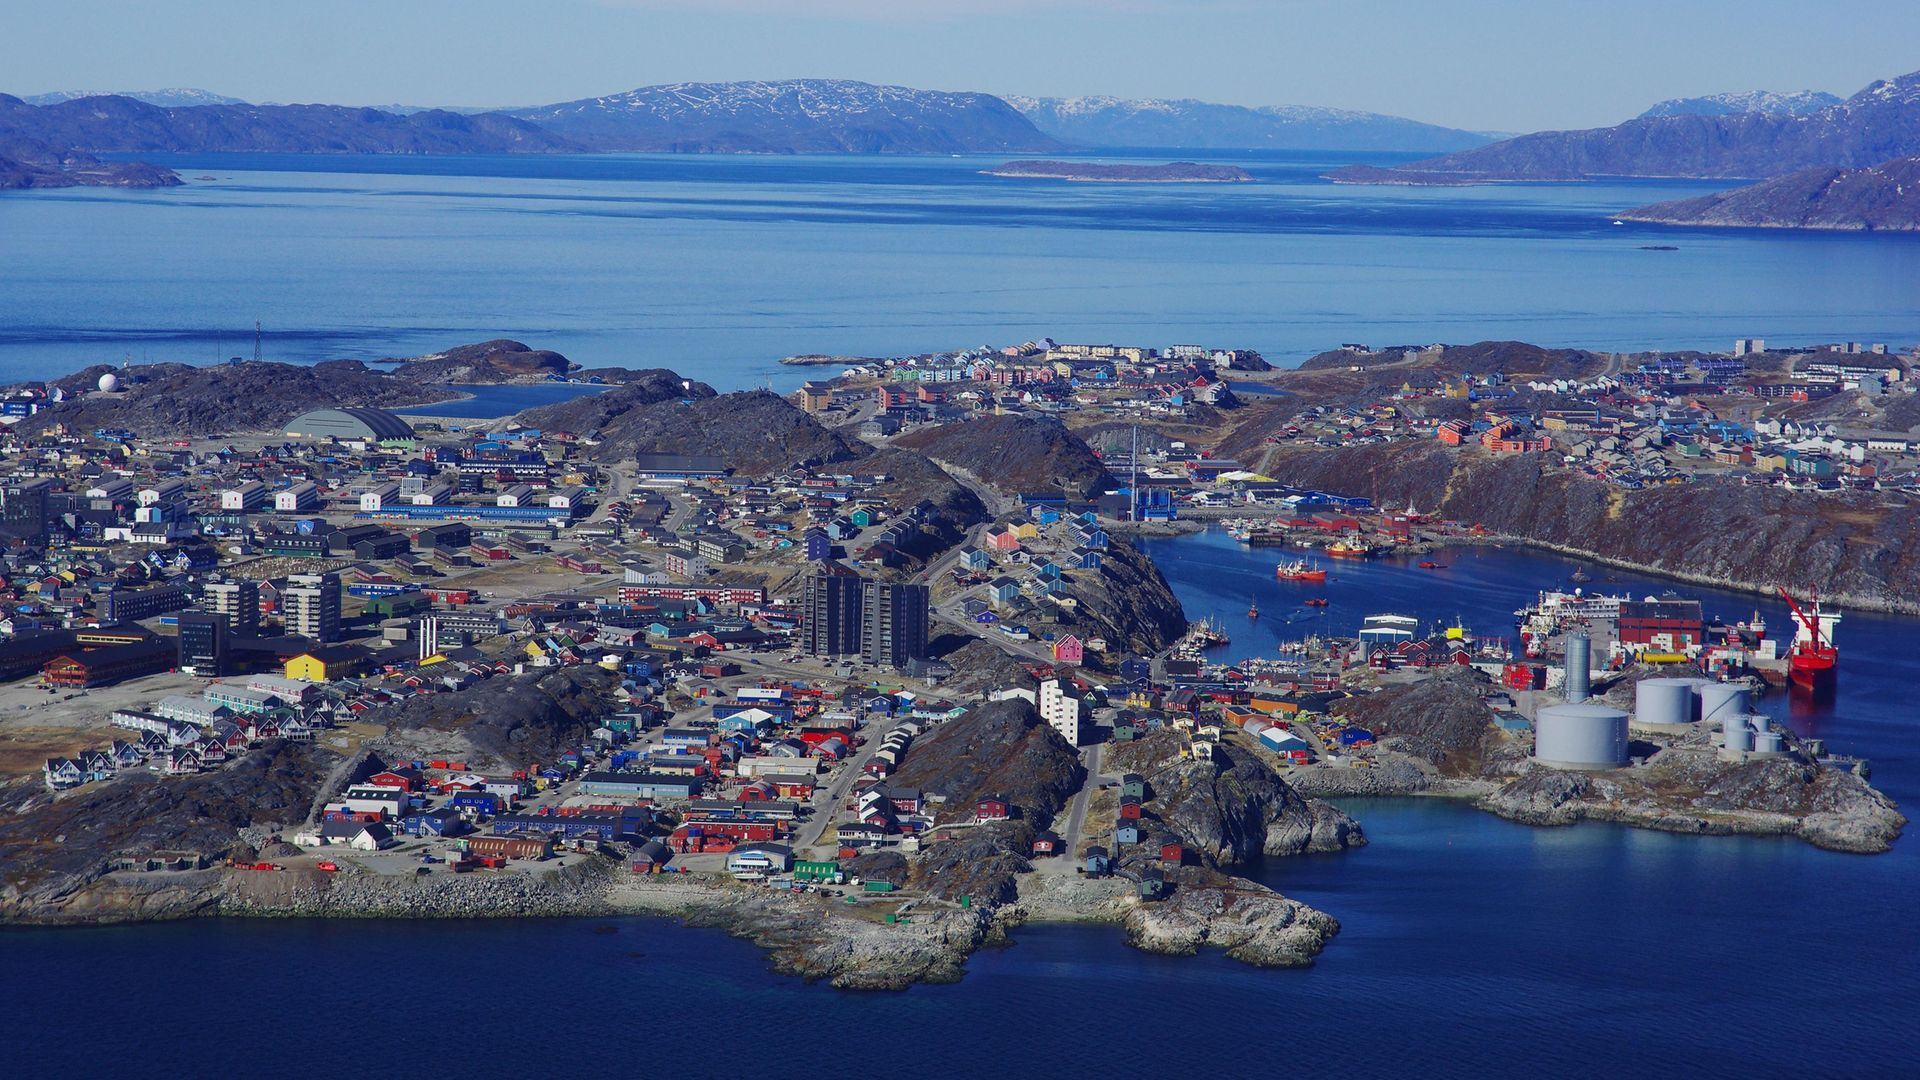 An aerial view of Nuuk, capital of Greenland - Credit: Gamma-Rapho via Getty Images